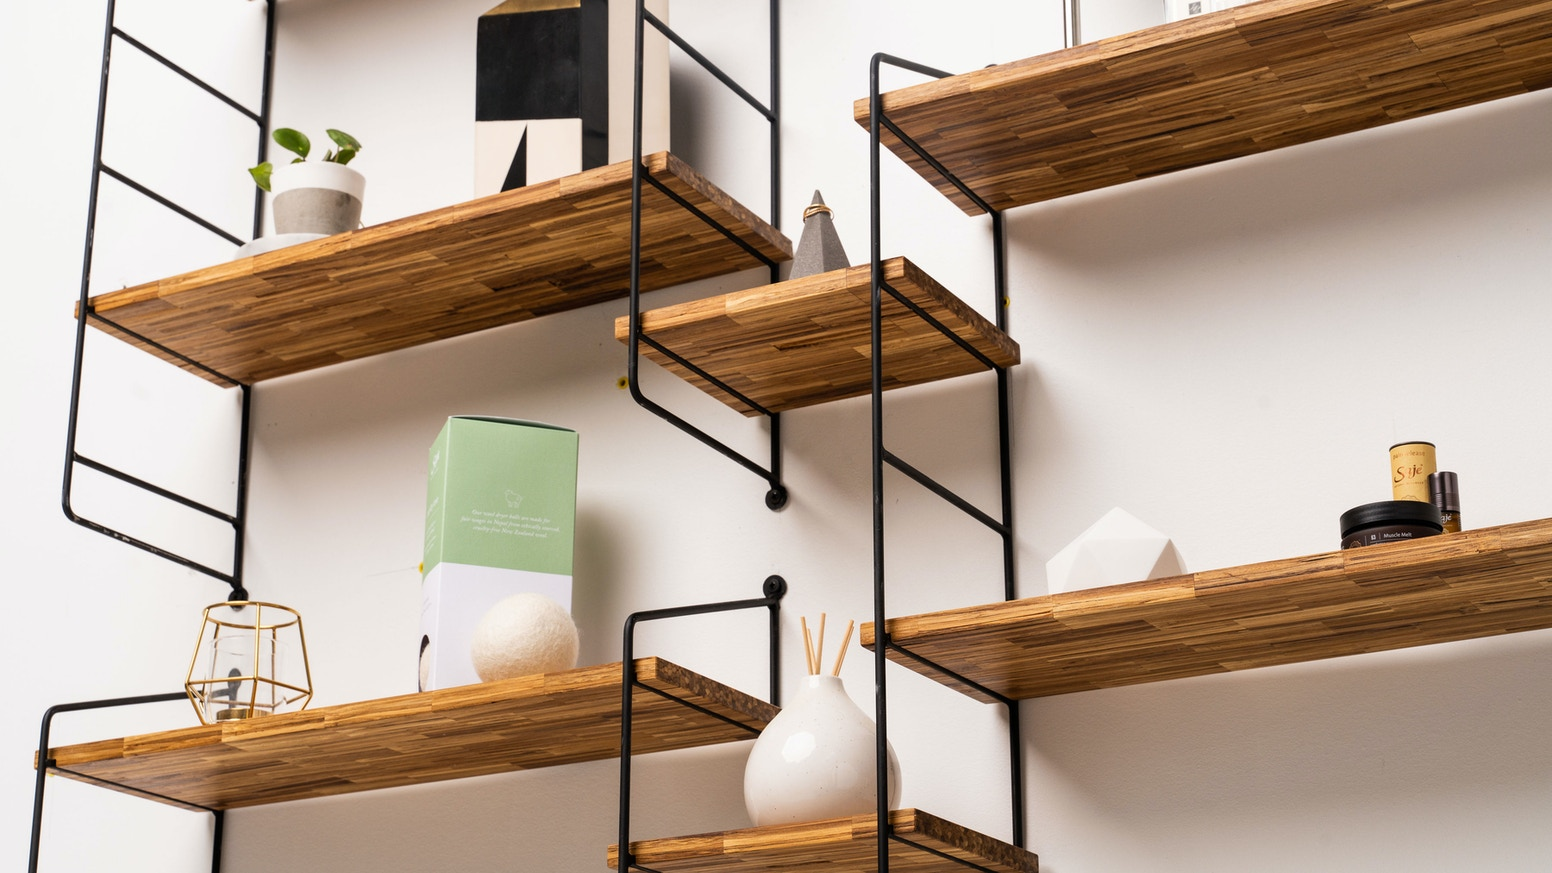 smile-the-modular-shelf-made-entirely-of-chopsticks